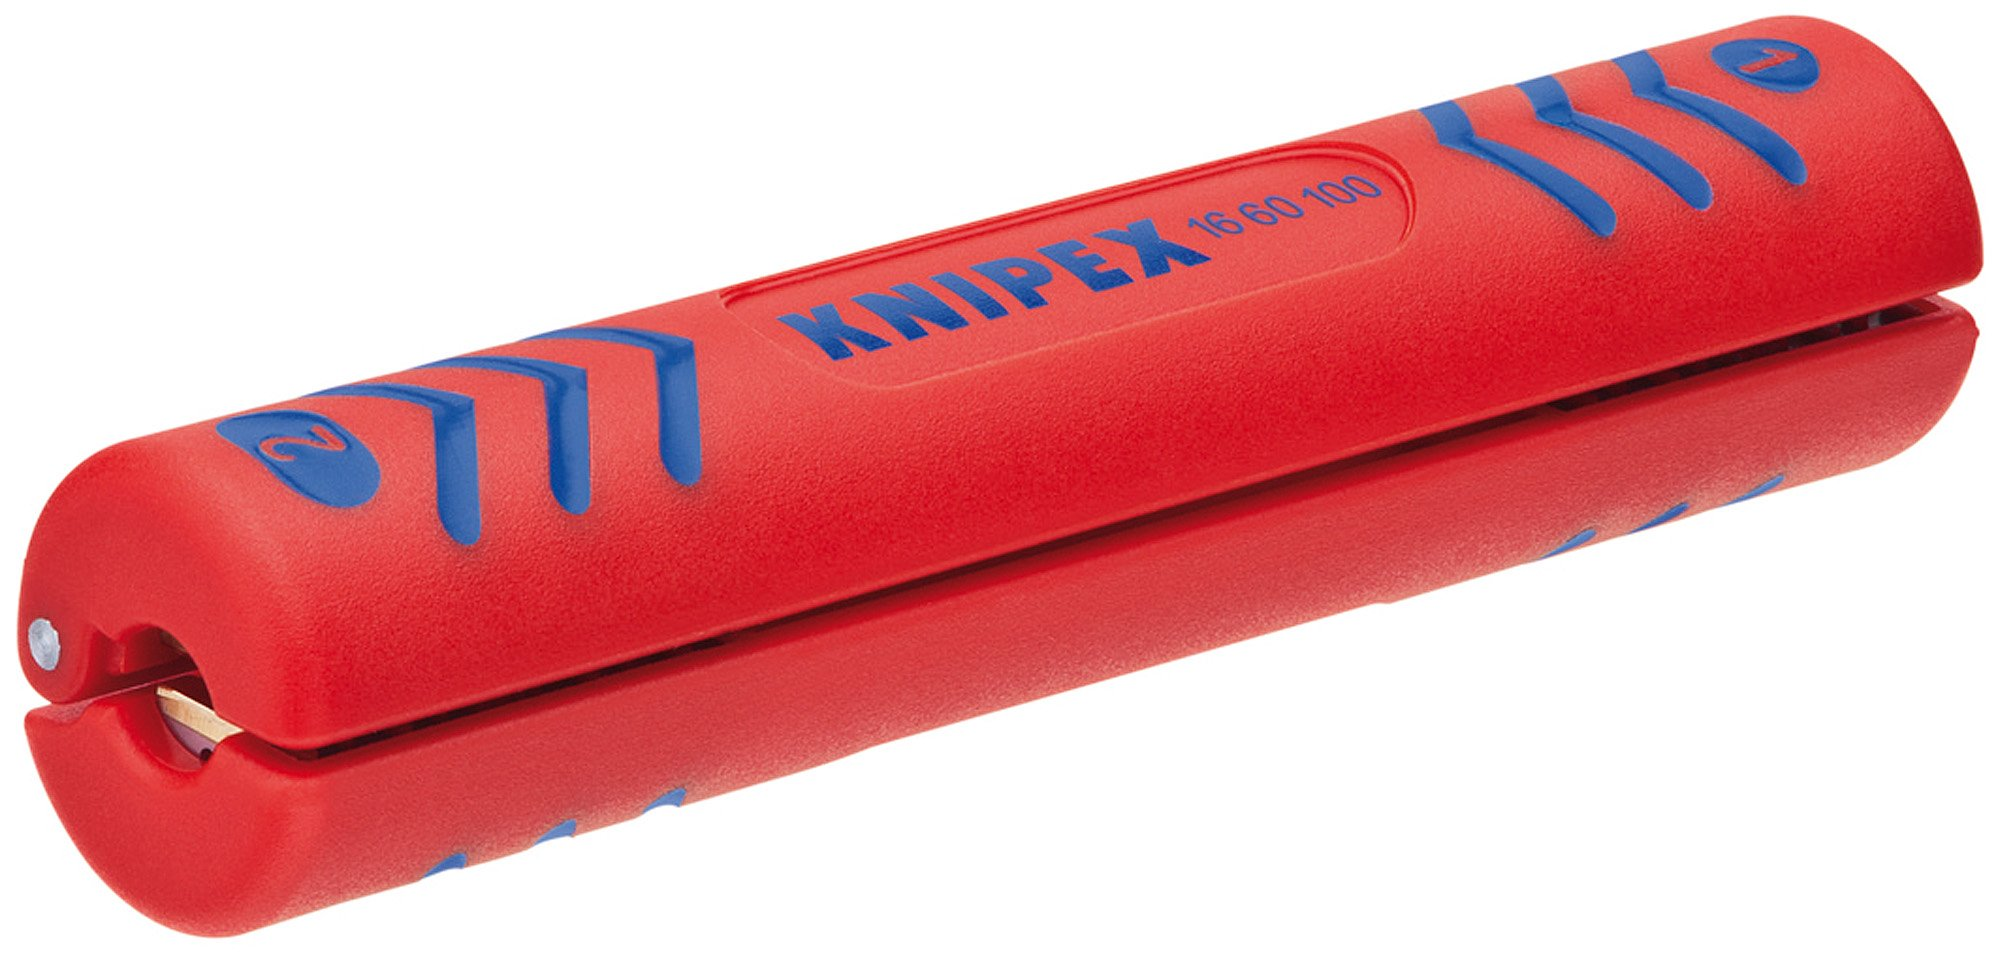 Knipex 16 60 100 SB Stripping Tool for coax cables 3,94'' in blister packaging